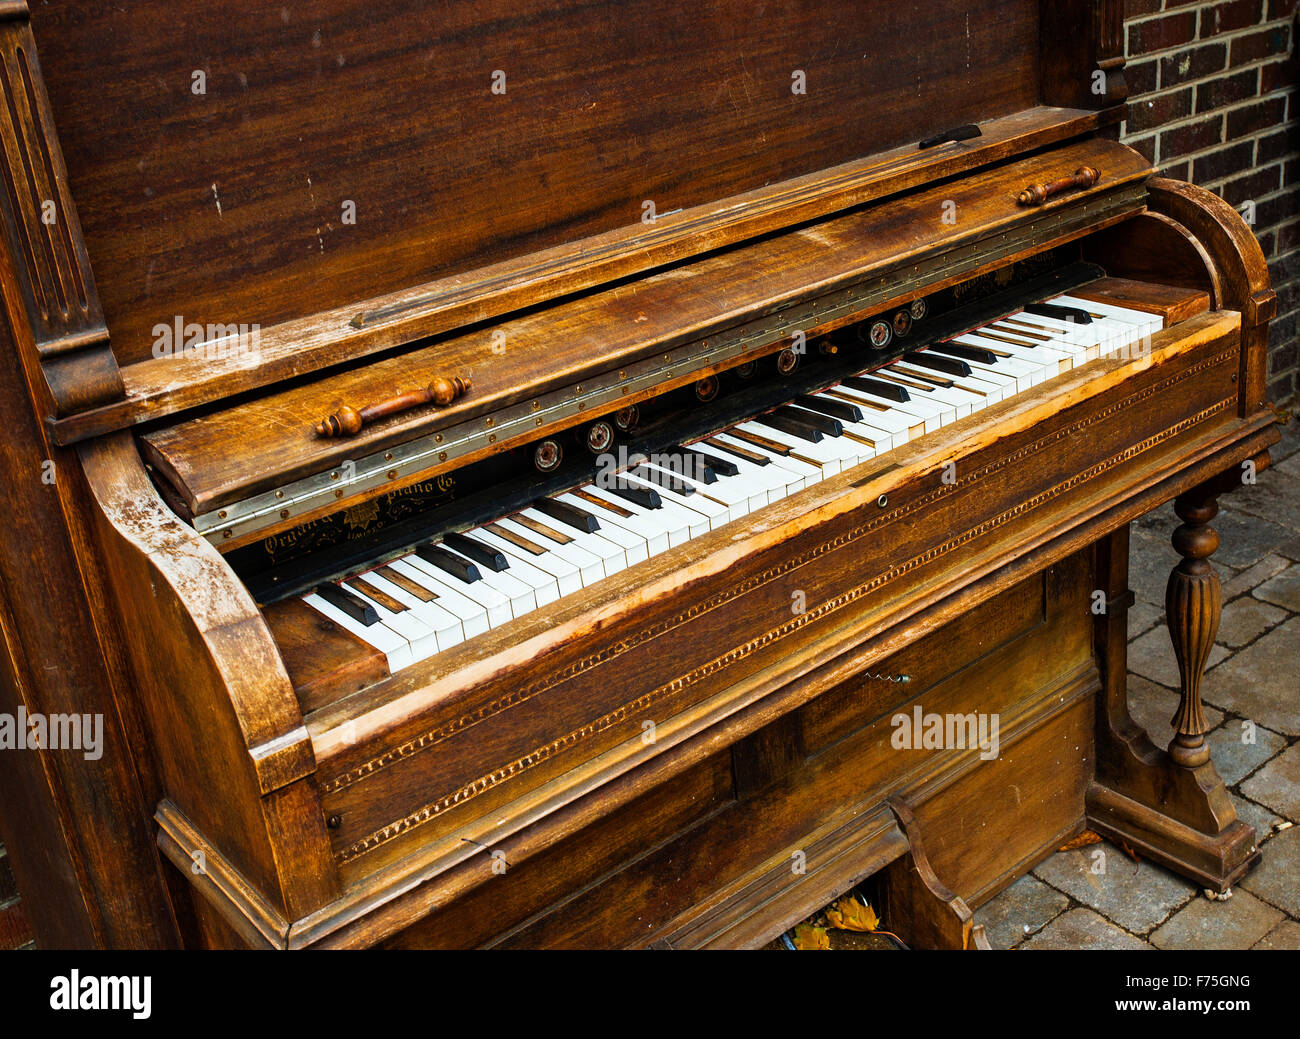 how to tell how old a piano is